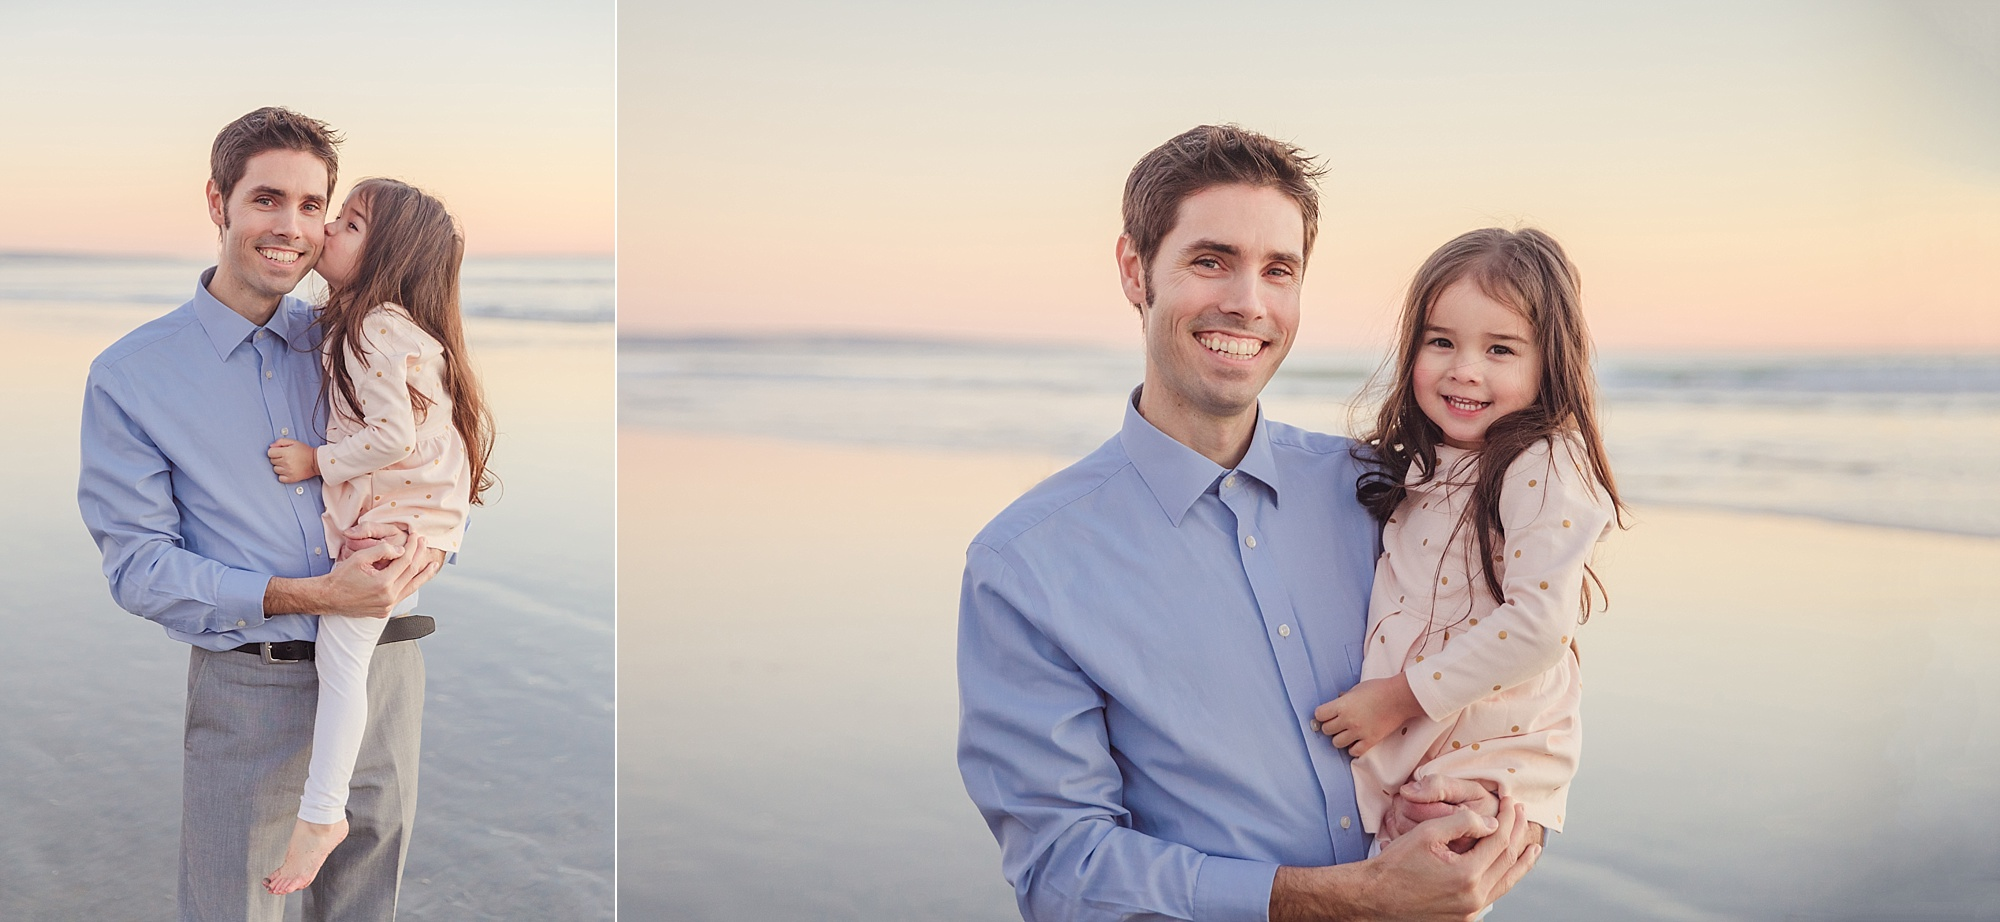 San Diego Photographer | San Diego Photography